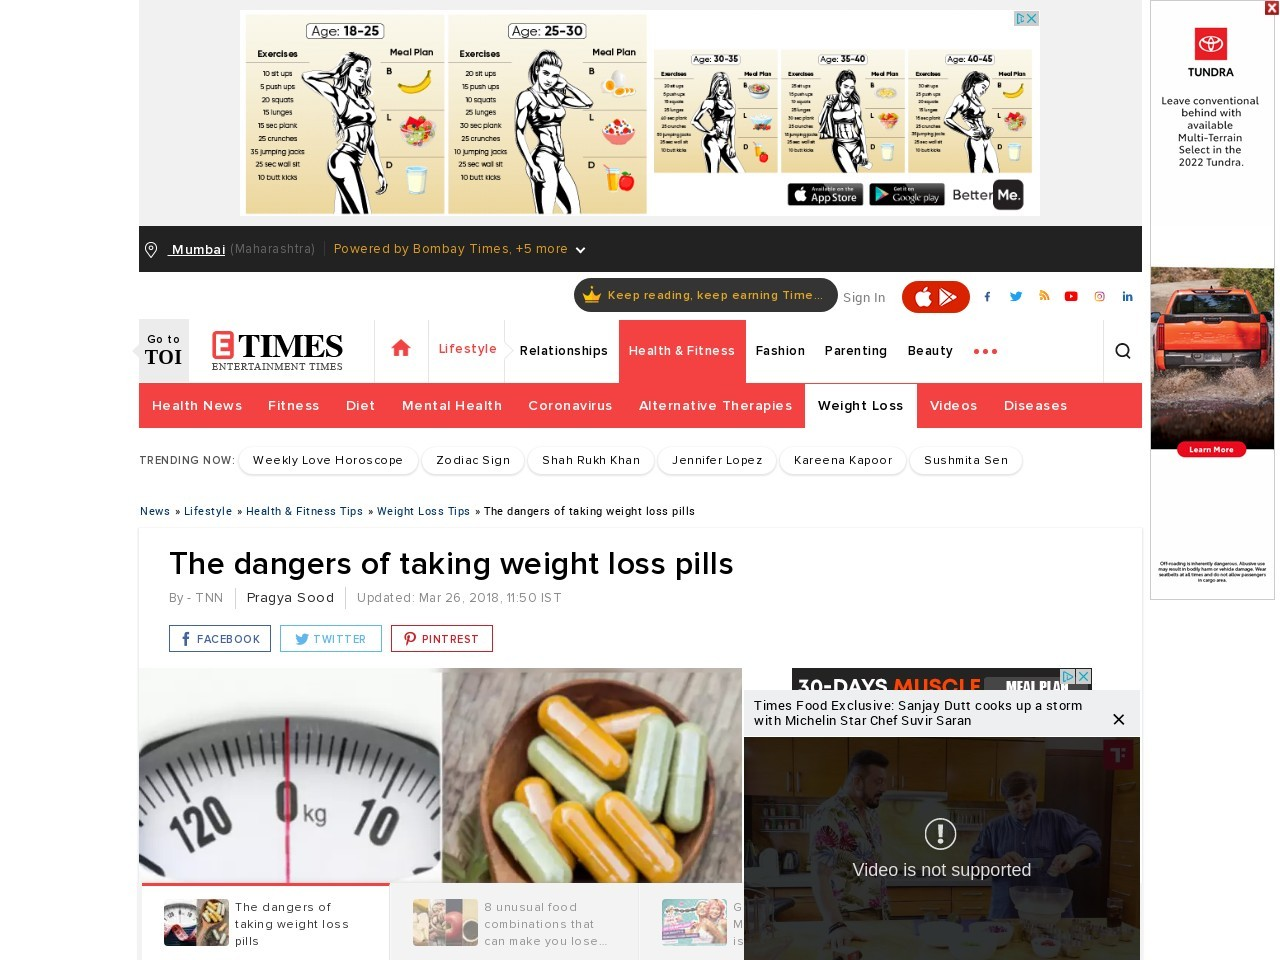 The dangers of taking weight loss pills